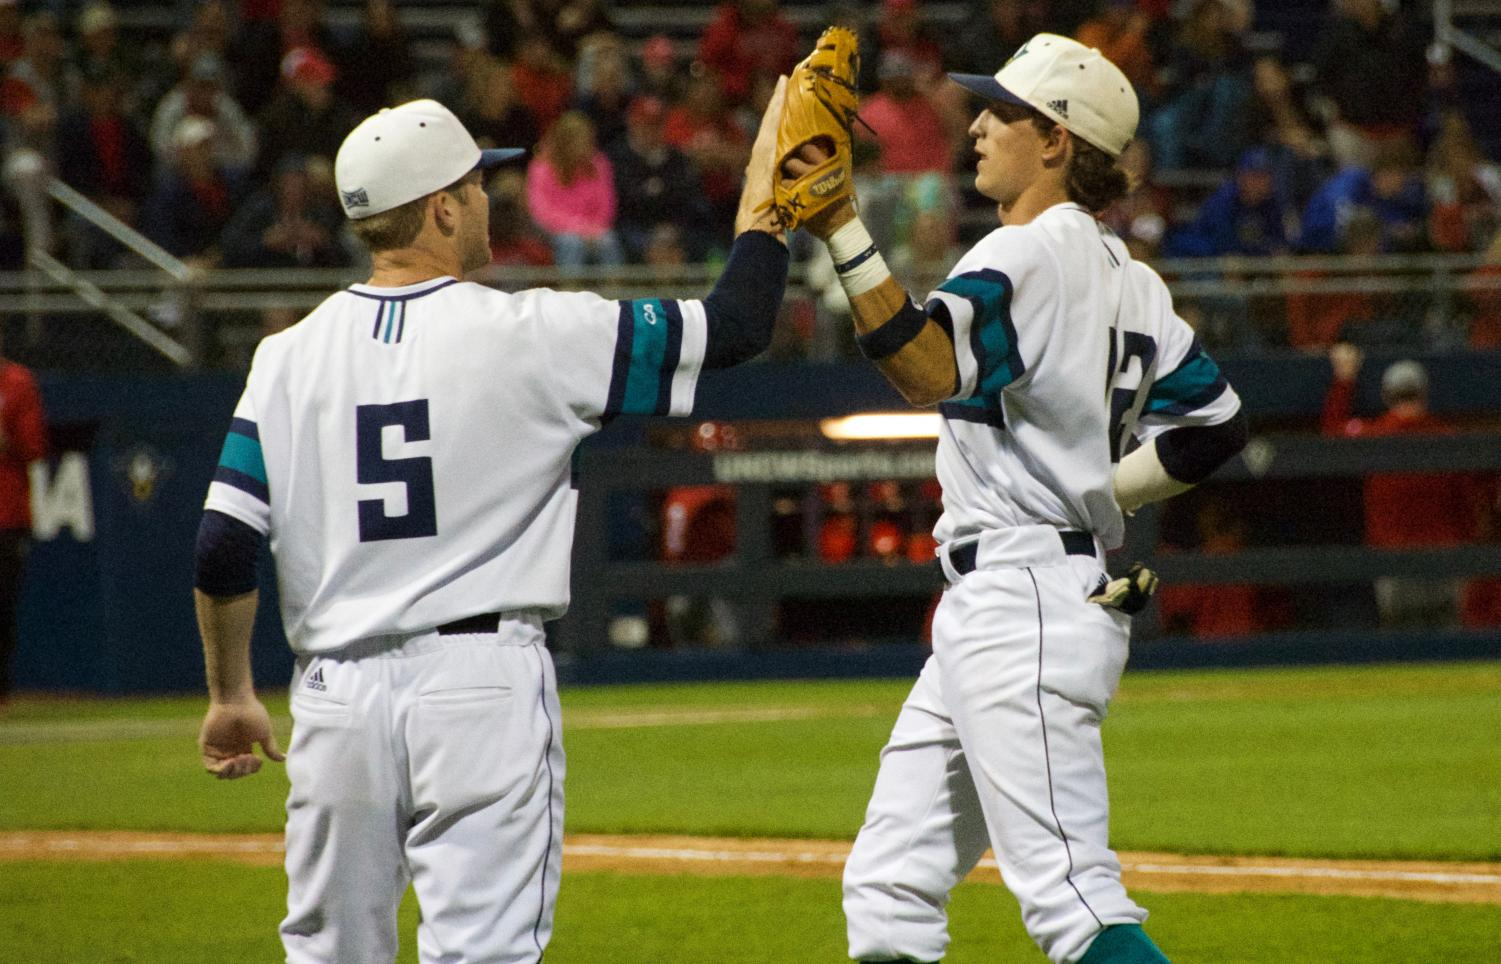 Noah Liles (5) high-fives Noah Bridges (22) during UNCW's contest against N.C. State at Brooks Field on April 16, 2019.